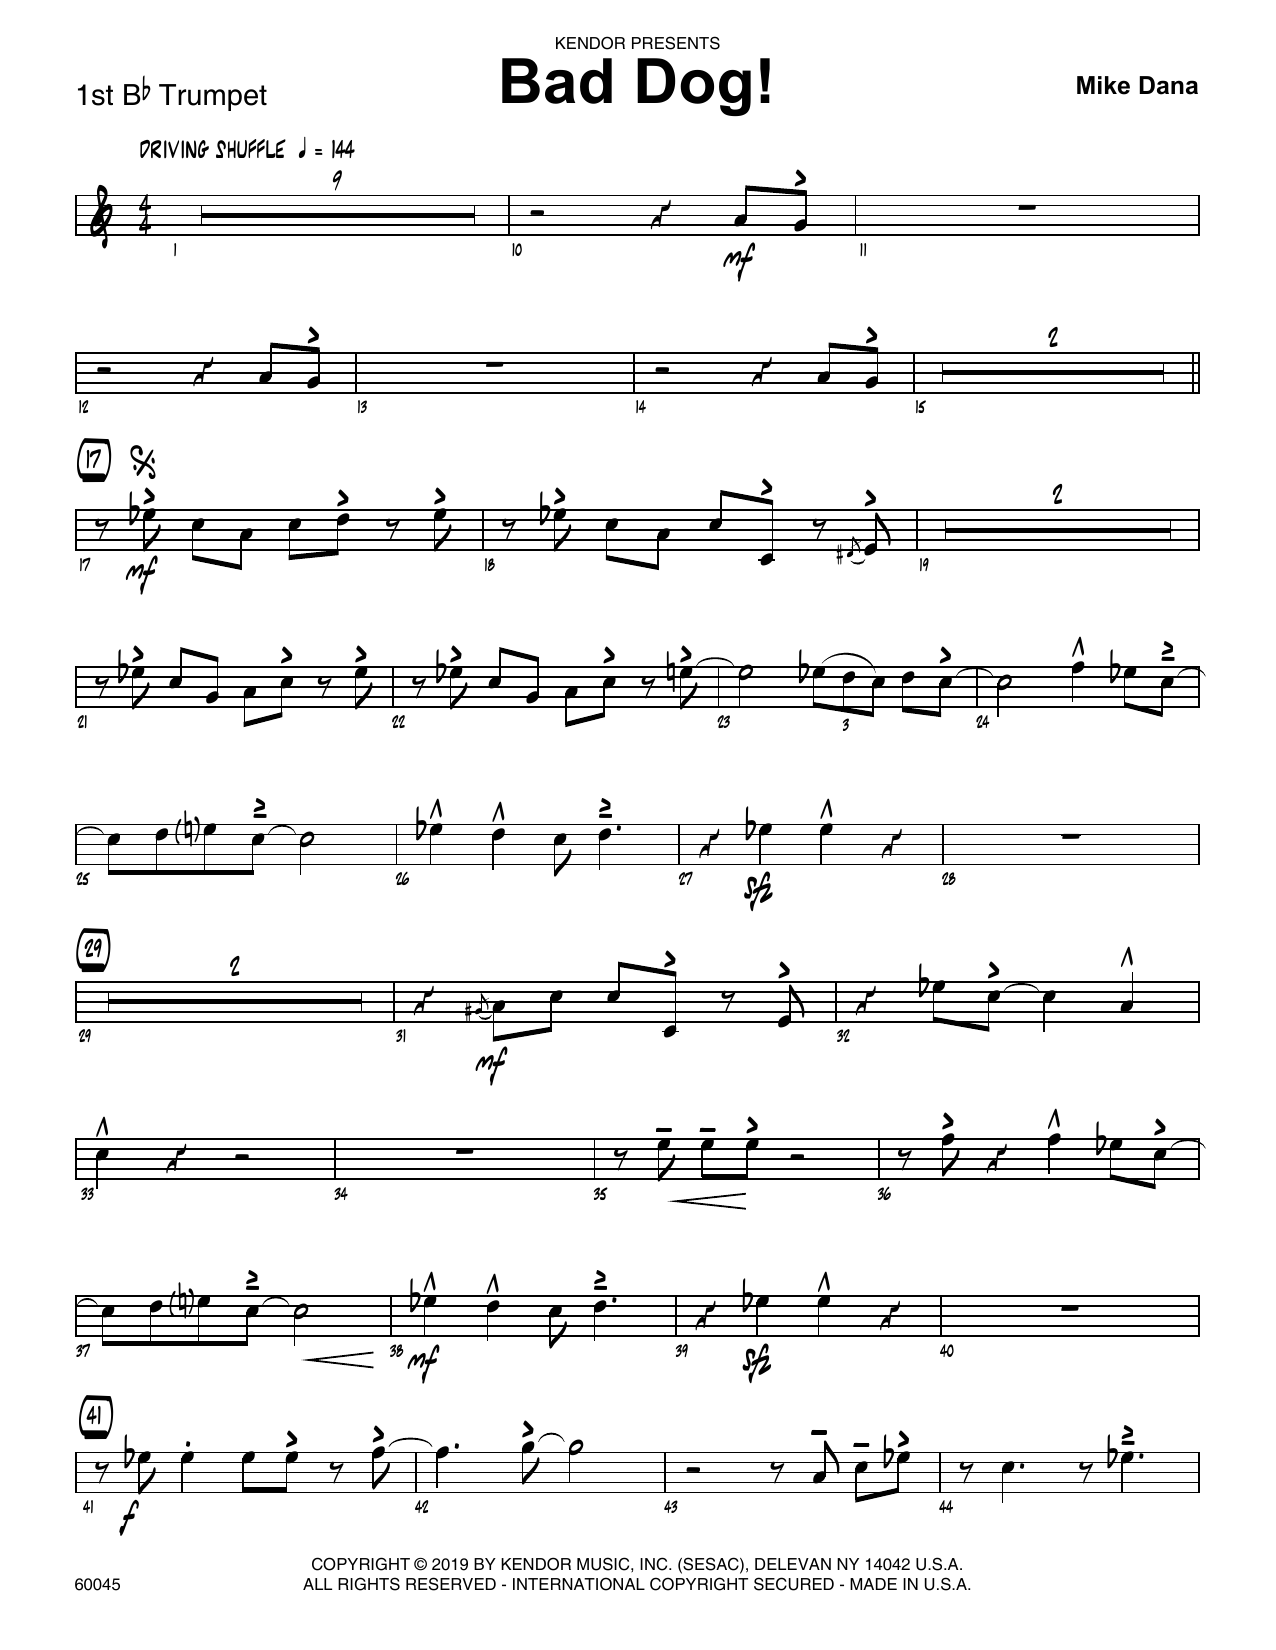 Mike Dana Bad Dog! - 1st Bb Trumpet sheet music notes and chords. Download Printable PDF.